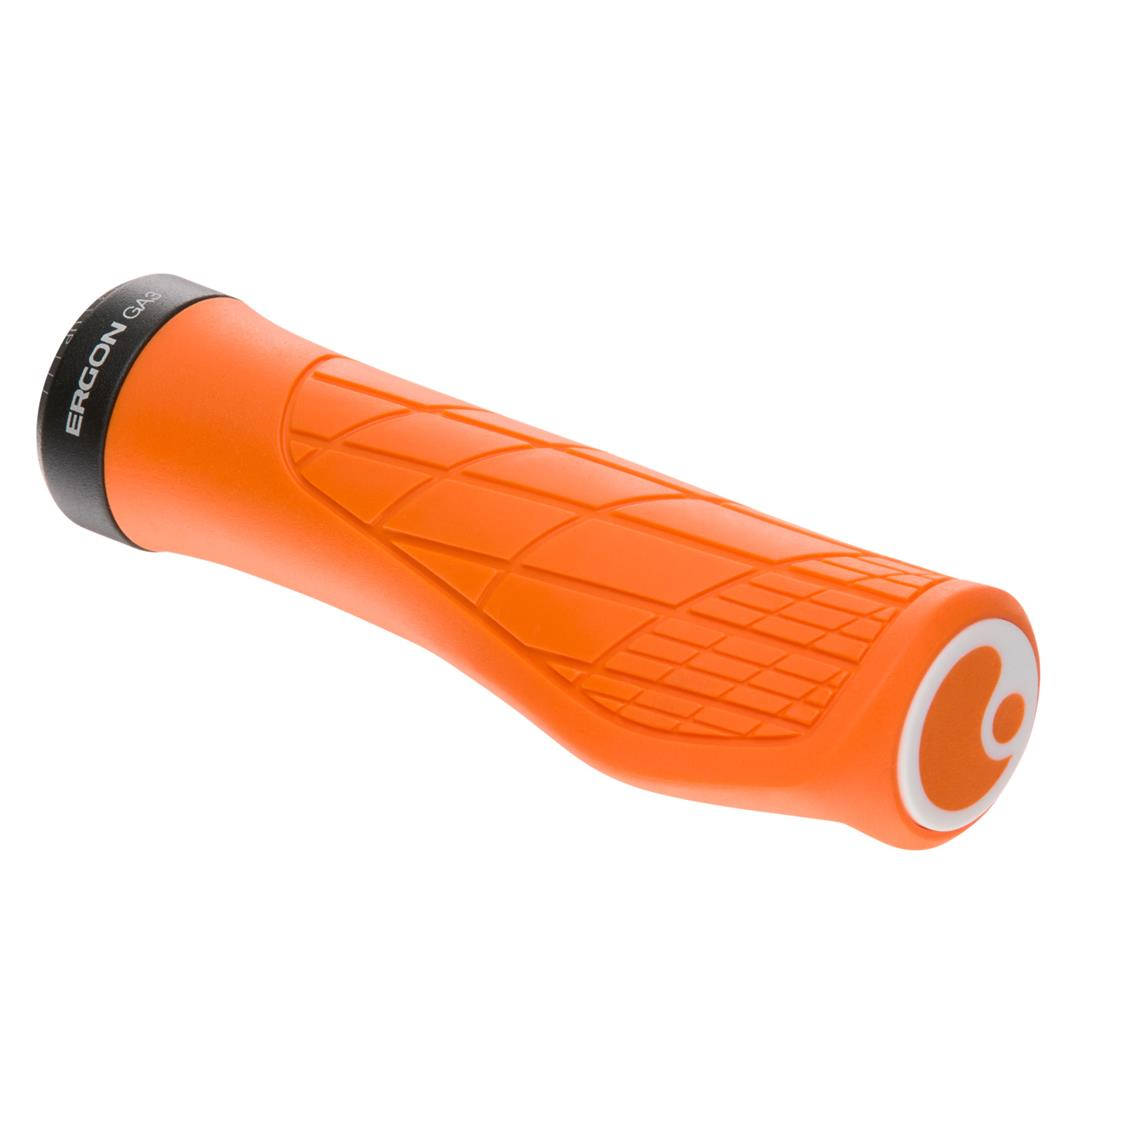 Ergon Mountain GA3-S Grips